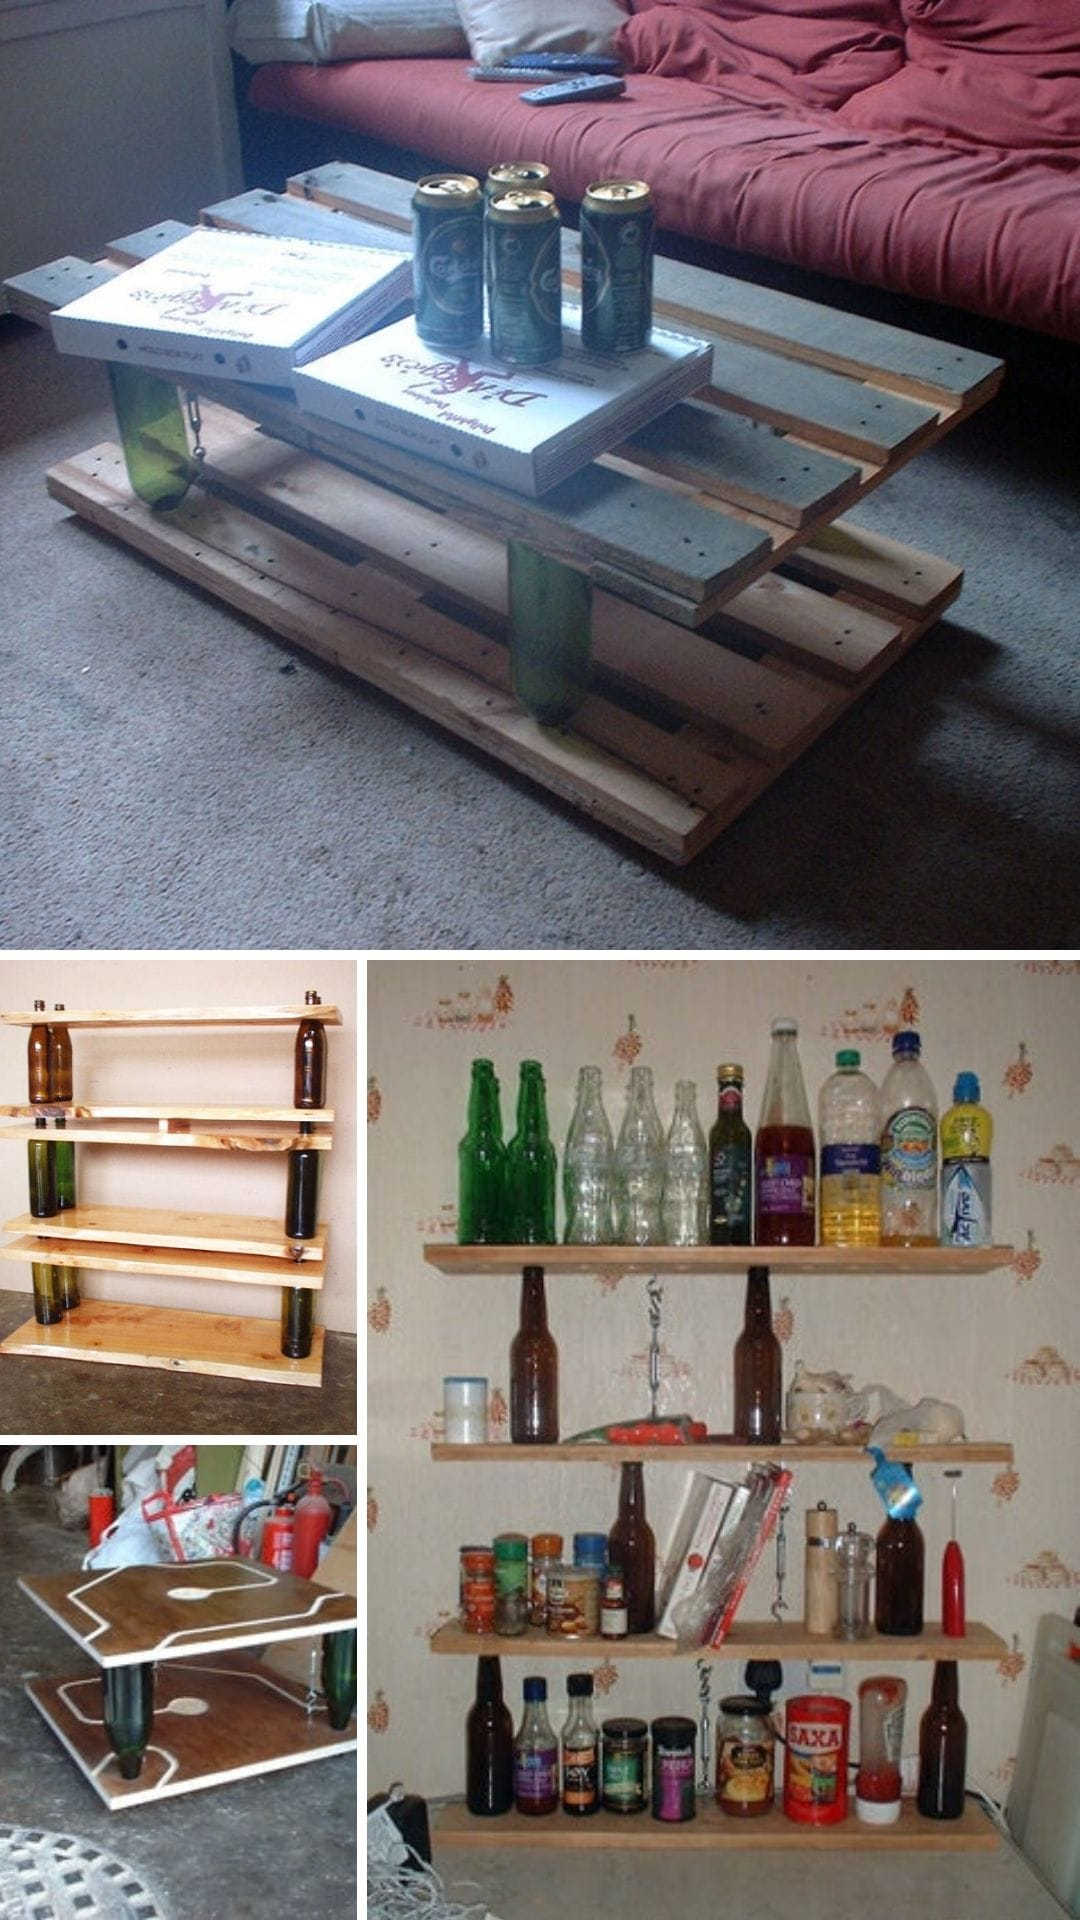 Recycled shelving and table